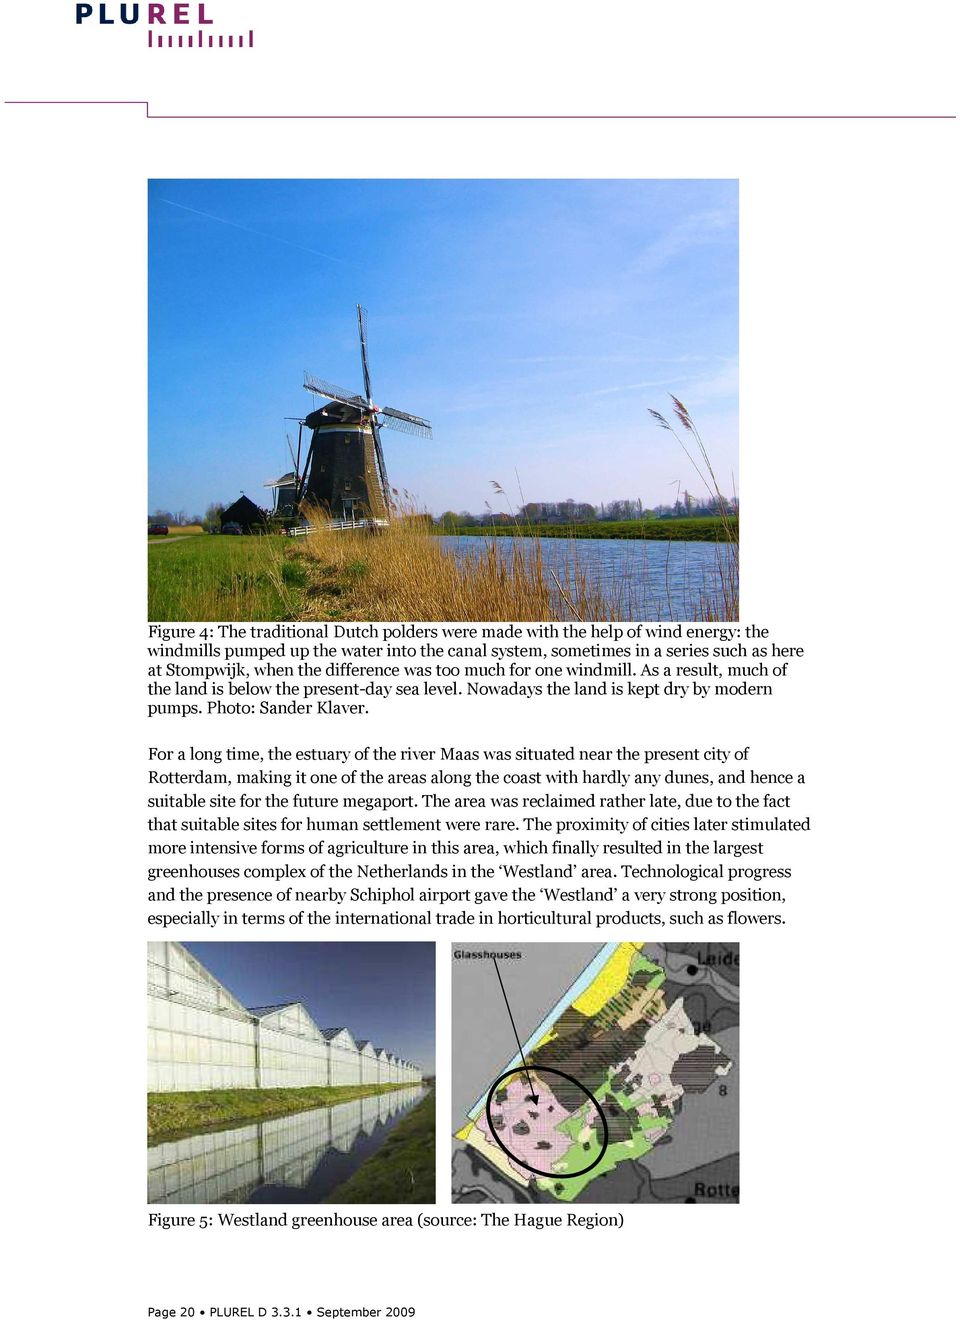 For a long time, the estuary of the river Maas was situated near the present city of Rotterdam, making it one of the areas along the coast with hardly any dunes, and hence a suitable site for the